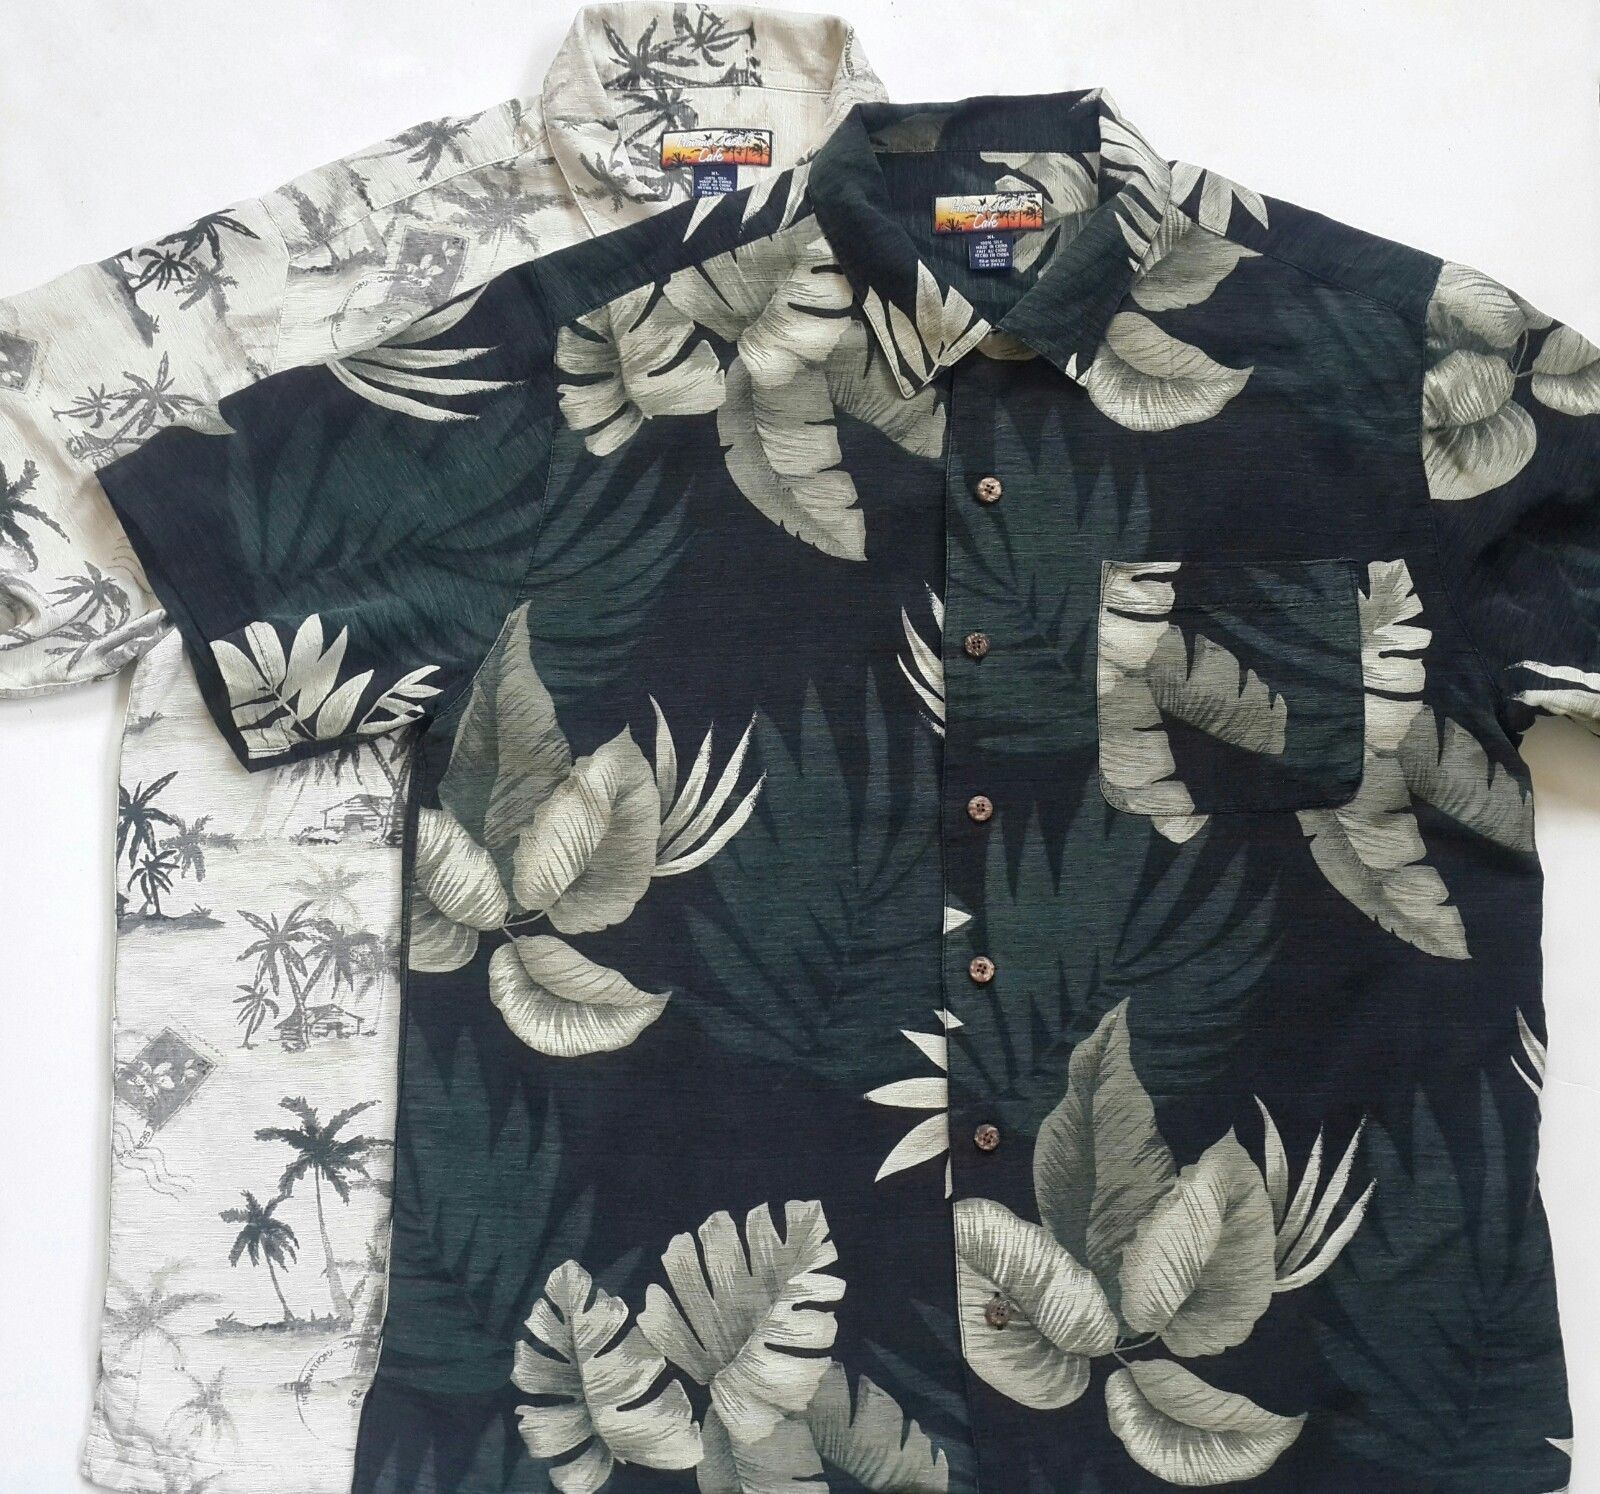 de11e8bd Havana Jacks Cafe XLarge Mens Hawaiian Shirt Floral Pattern %100 Silk Set  of 2 XL Havana Jacks Cafe Hawaiian shirt set. Both shirts are in great  shape and ...